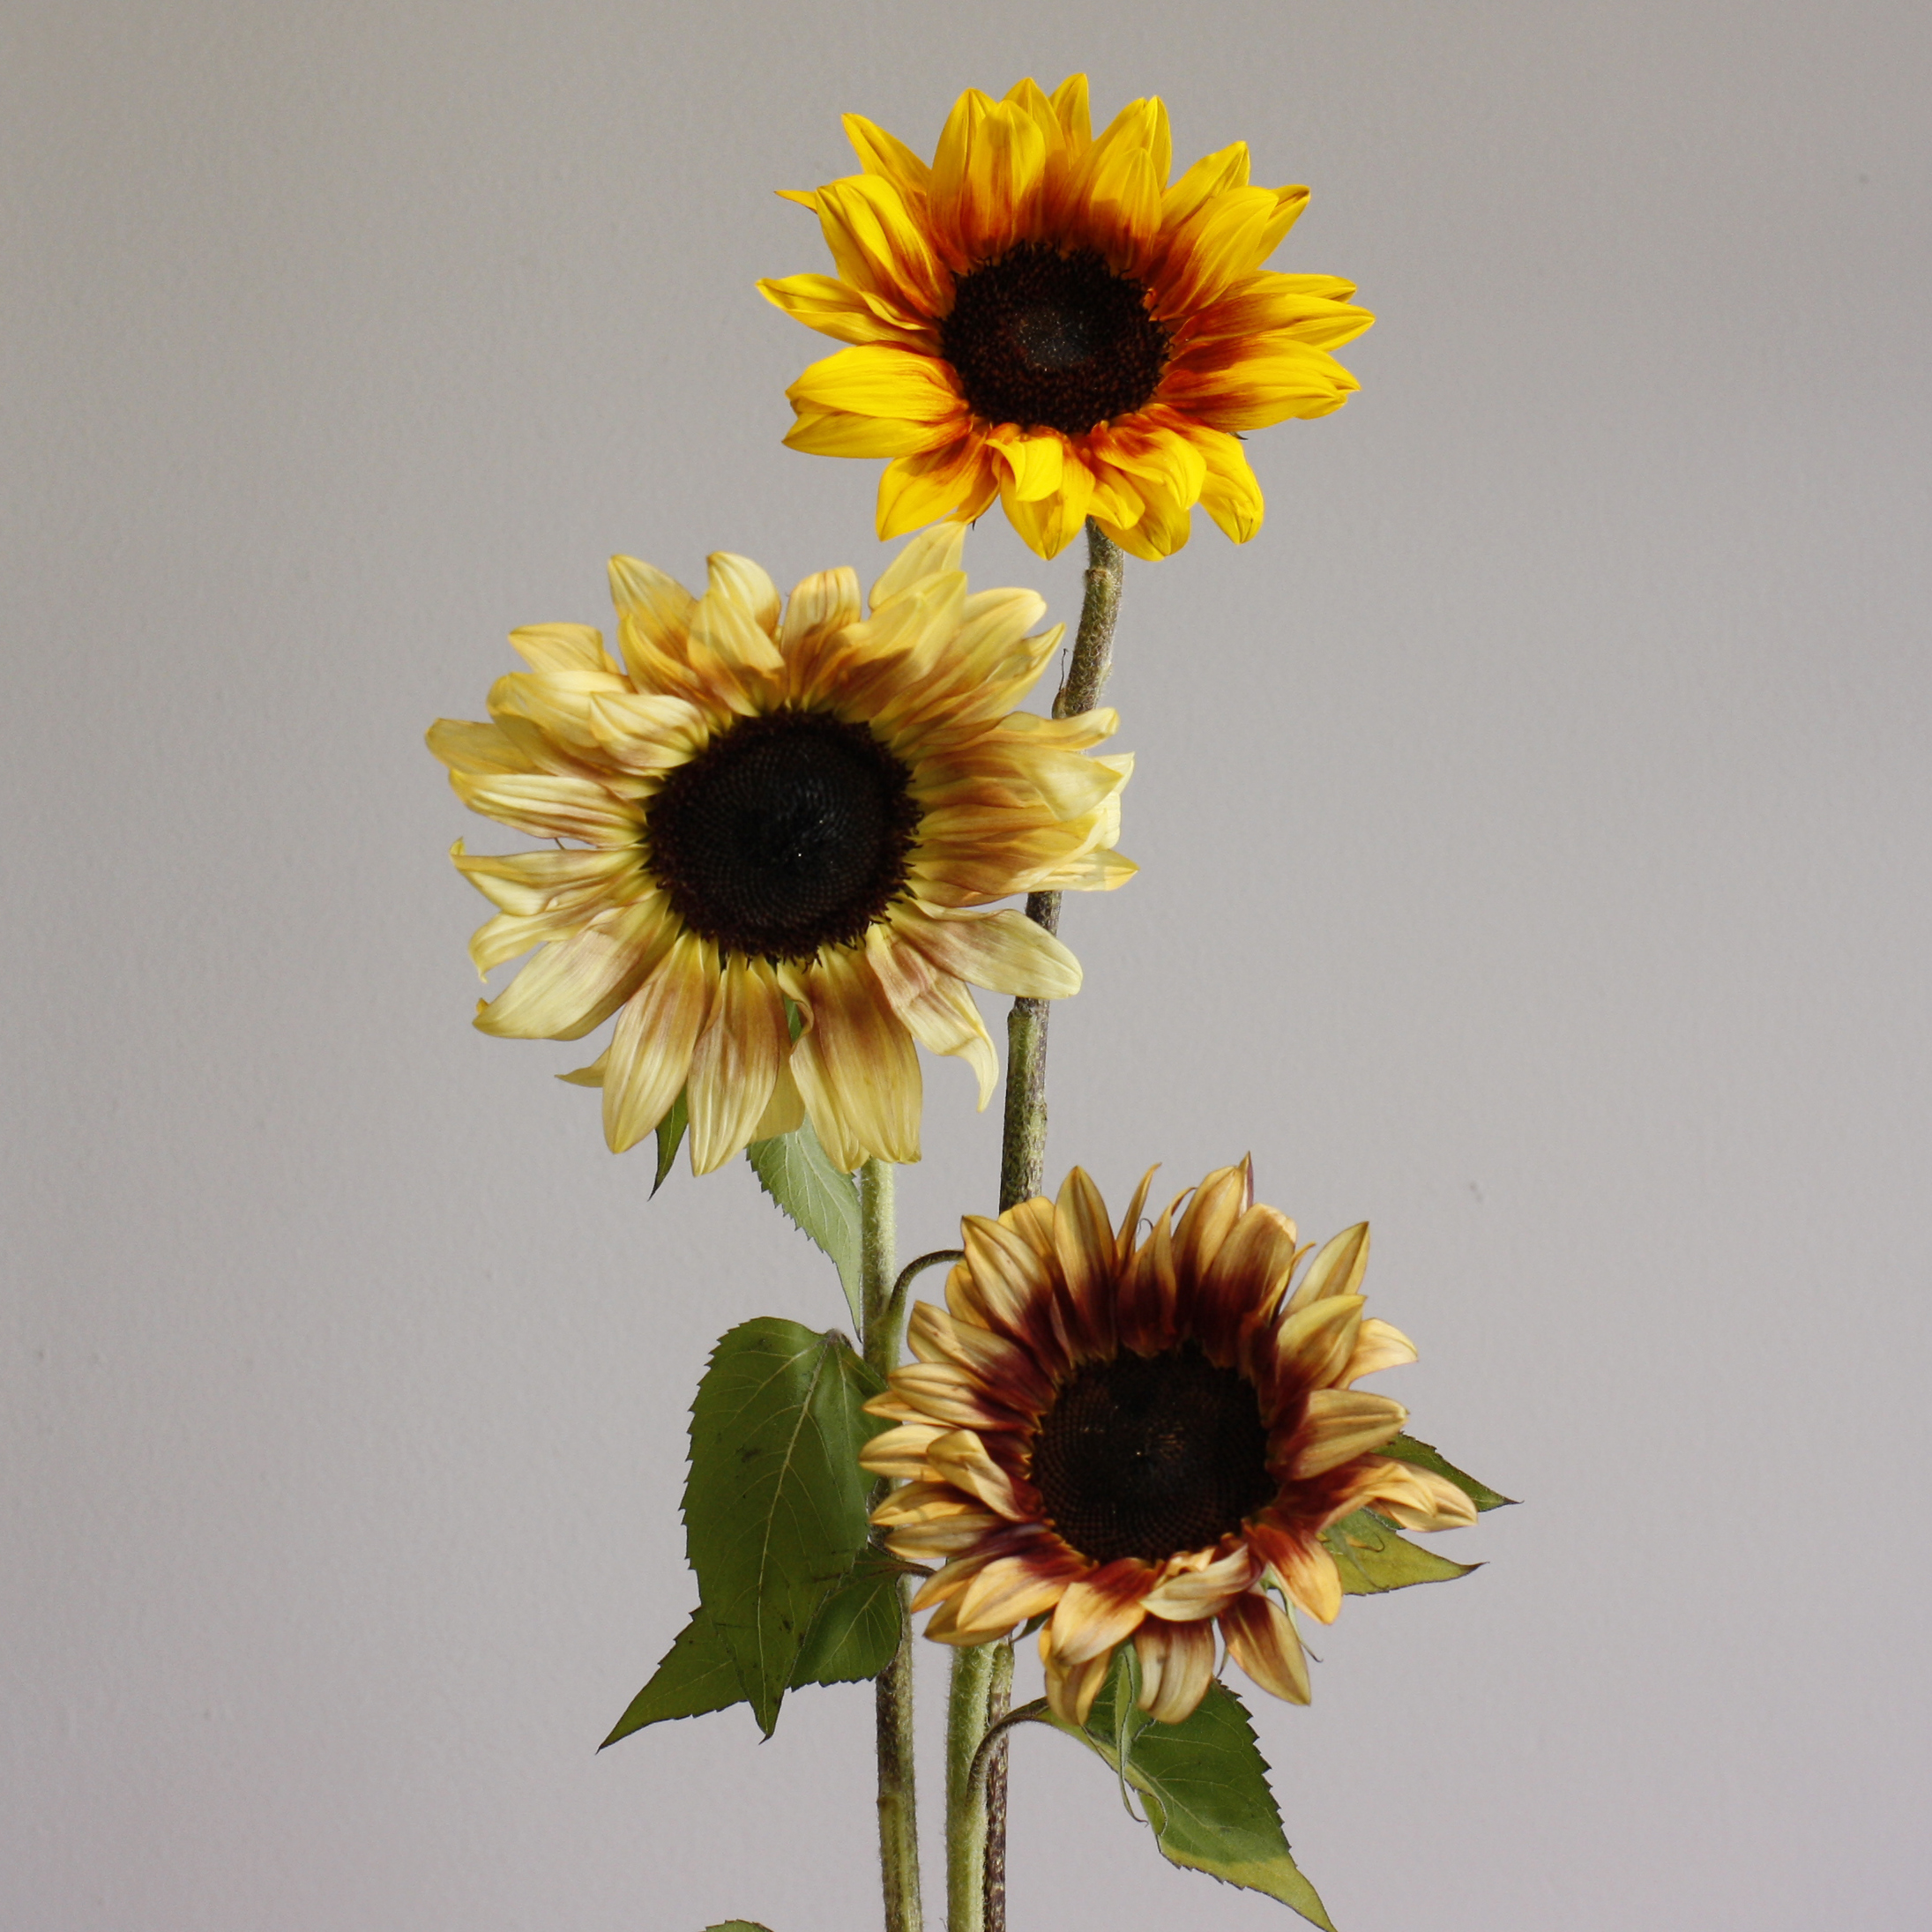 Local Sunflowers!